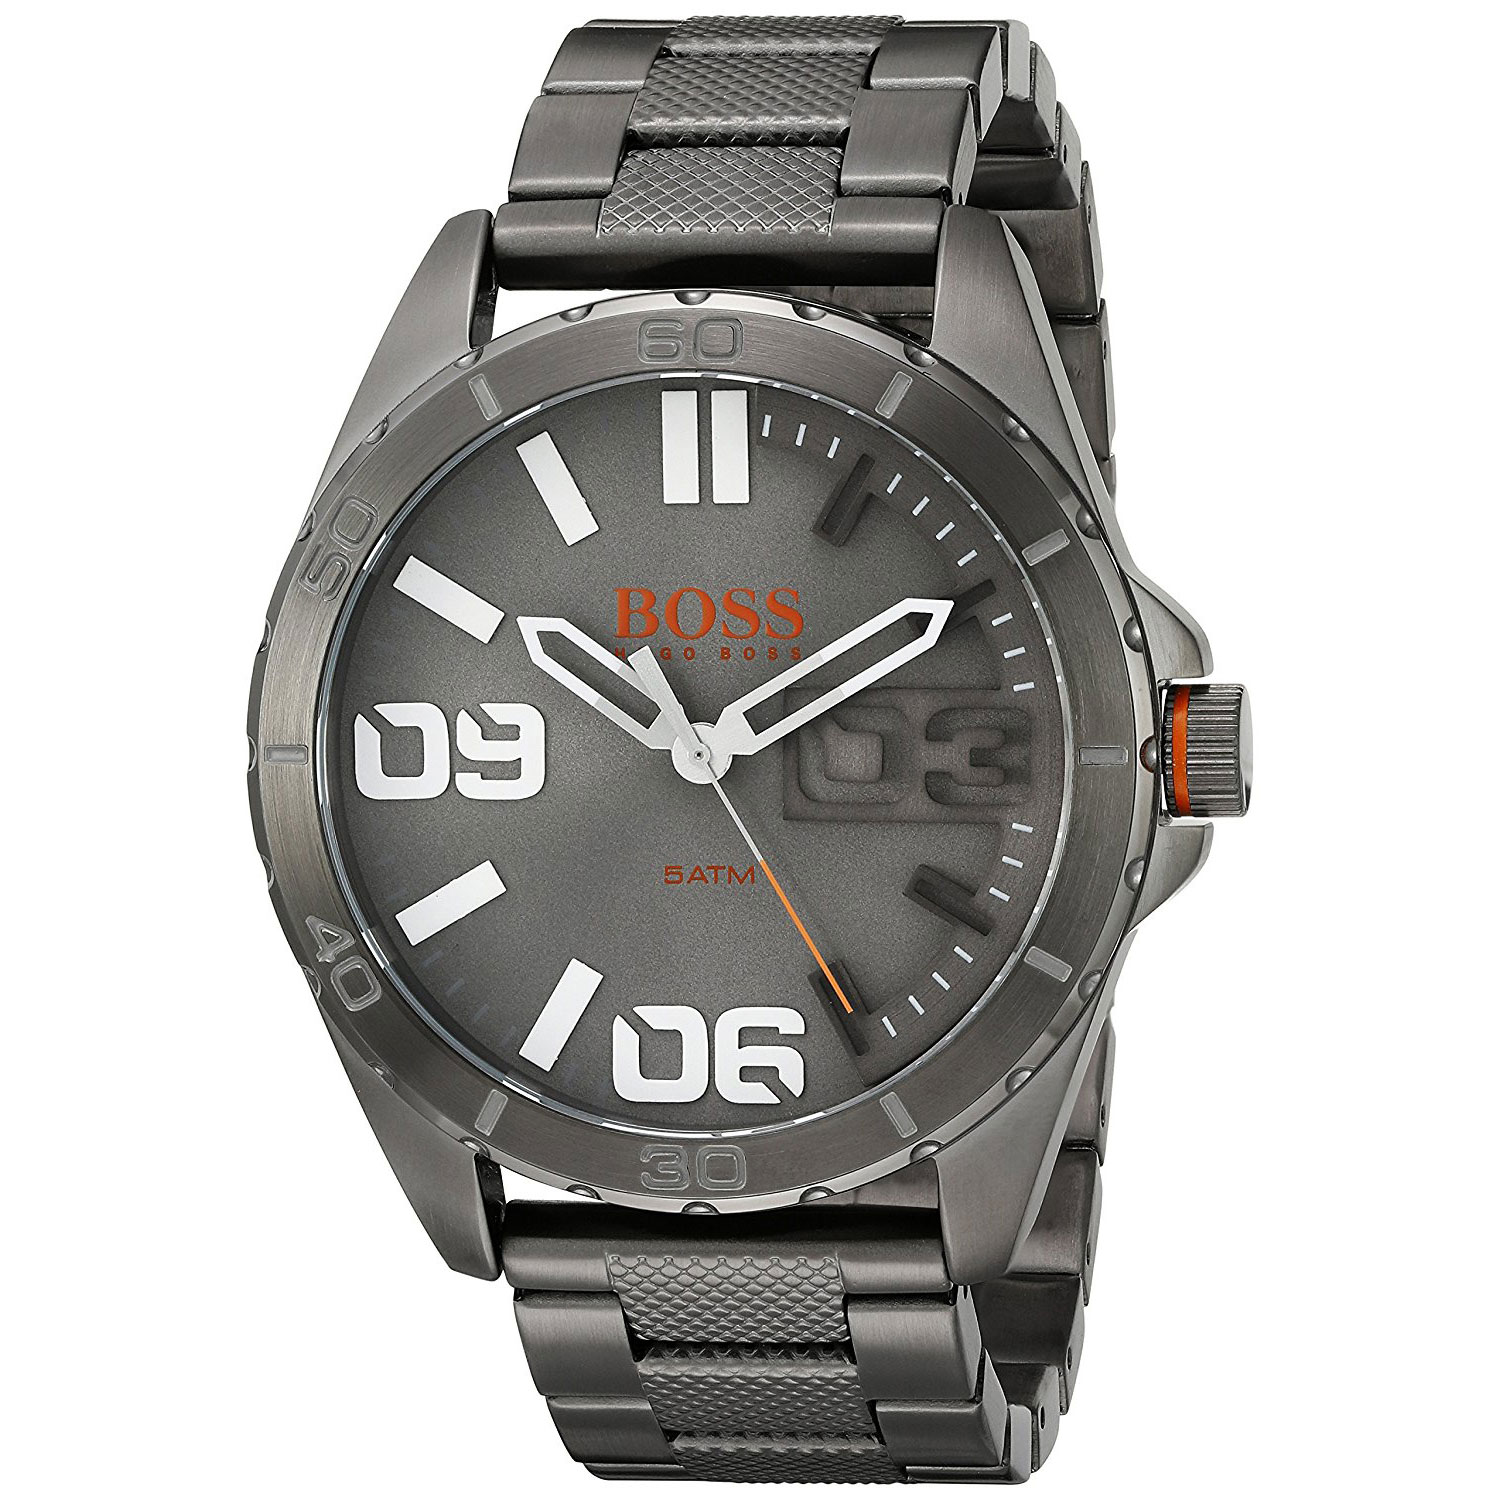 Good Watch Brands For Men >> Hugo Boss Orange Watch with grey stainless steel 1513289